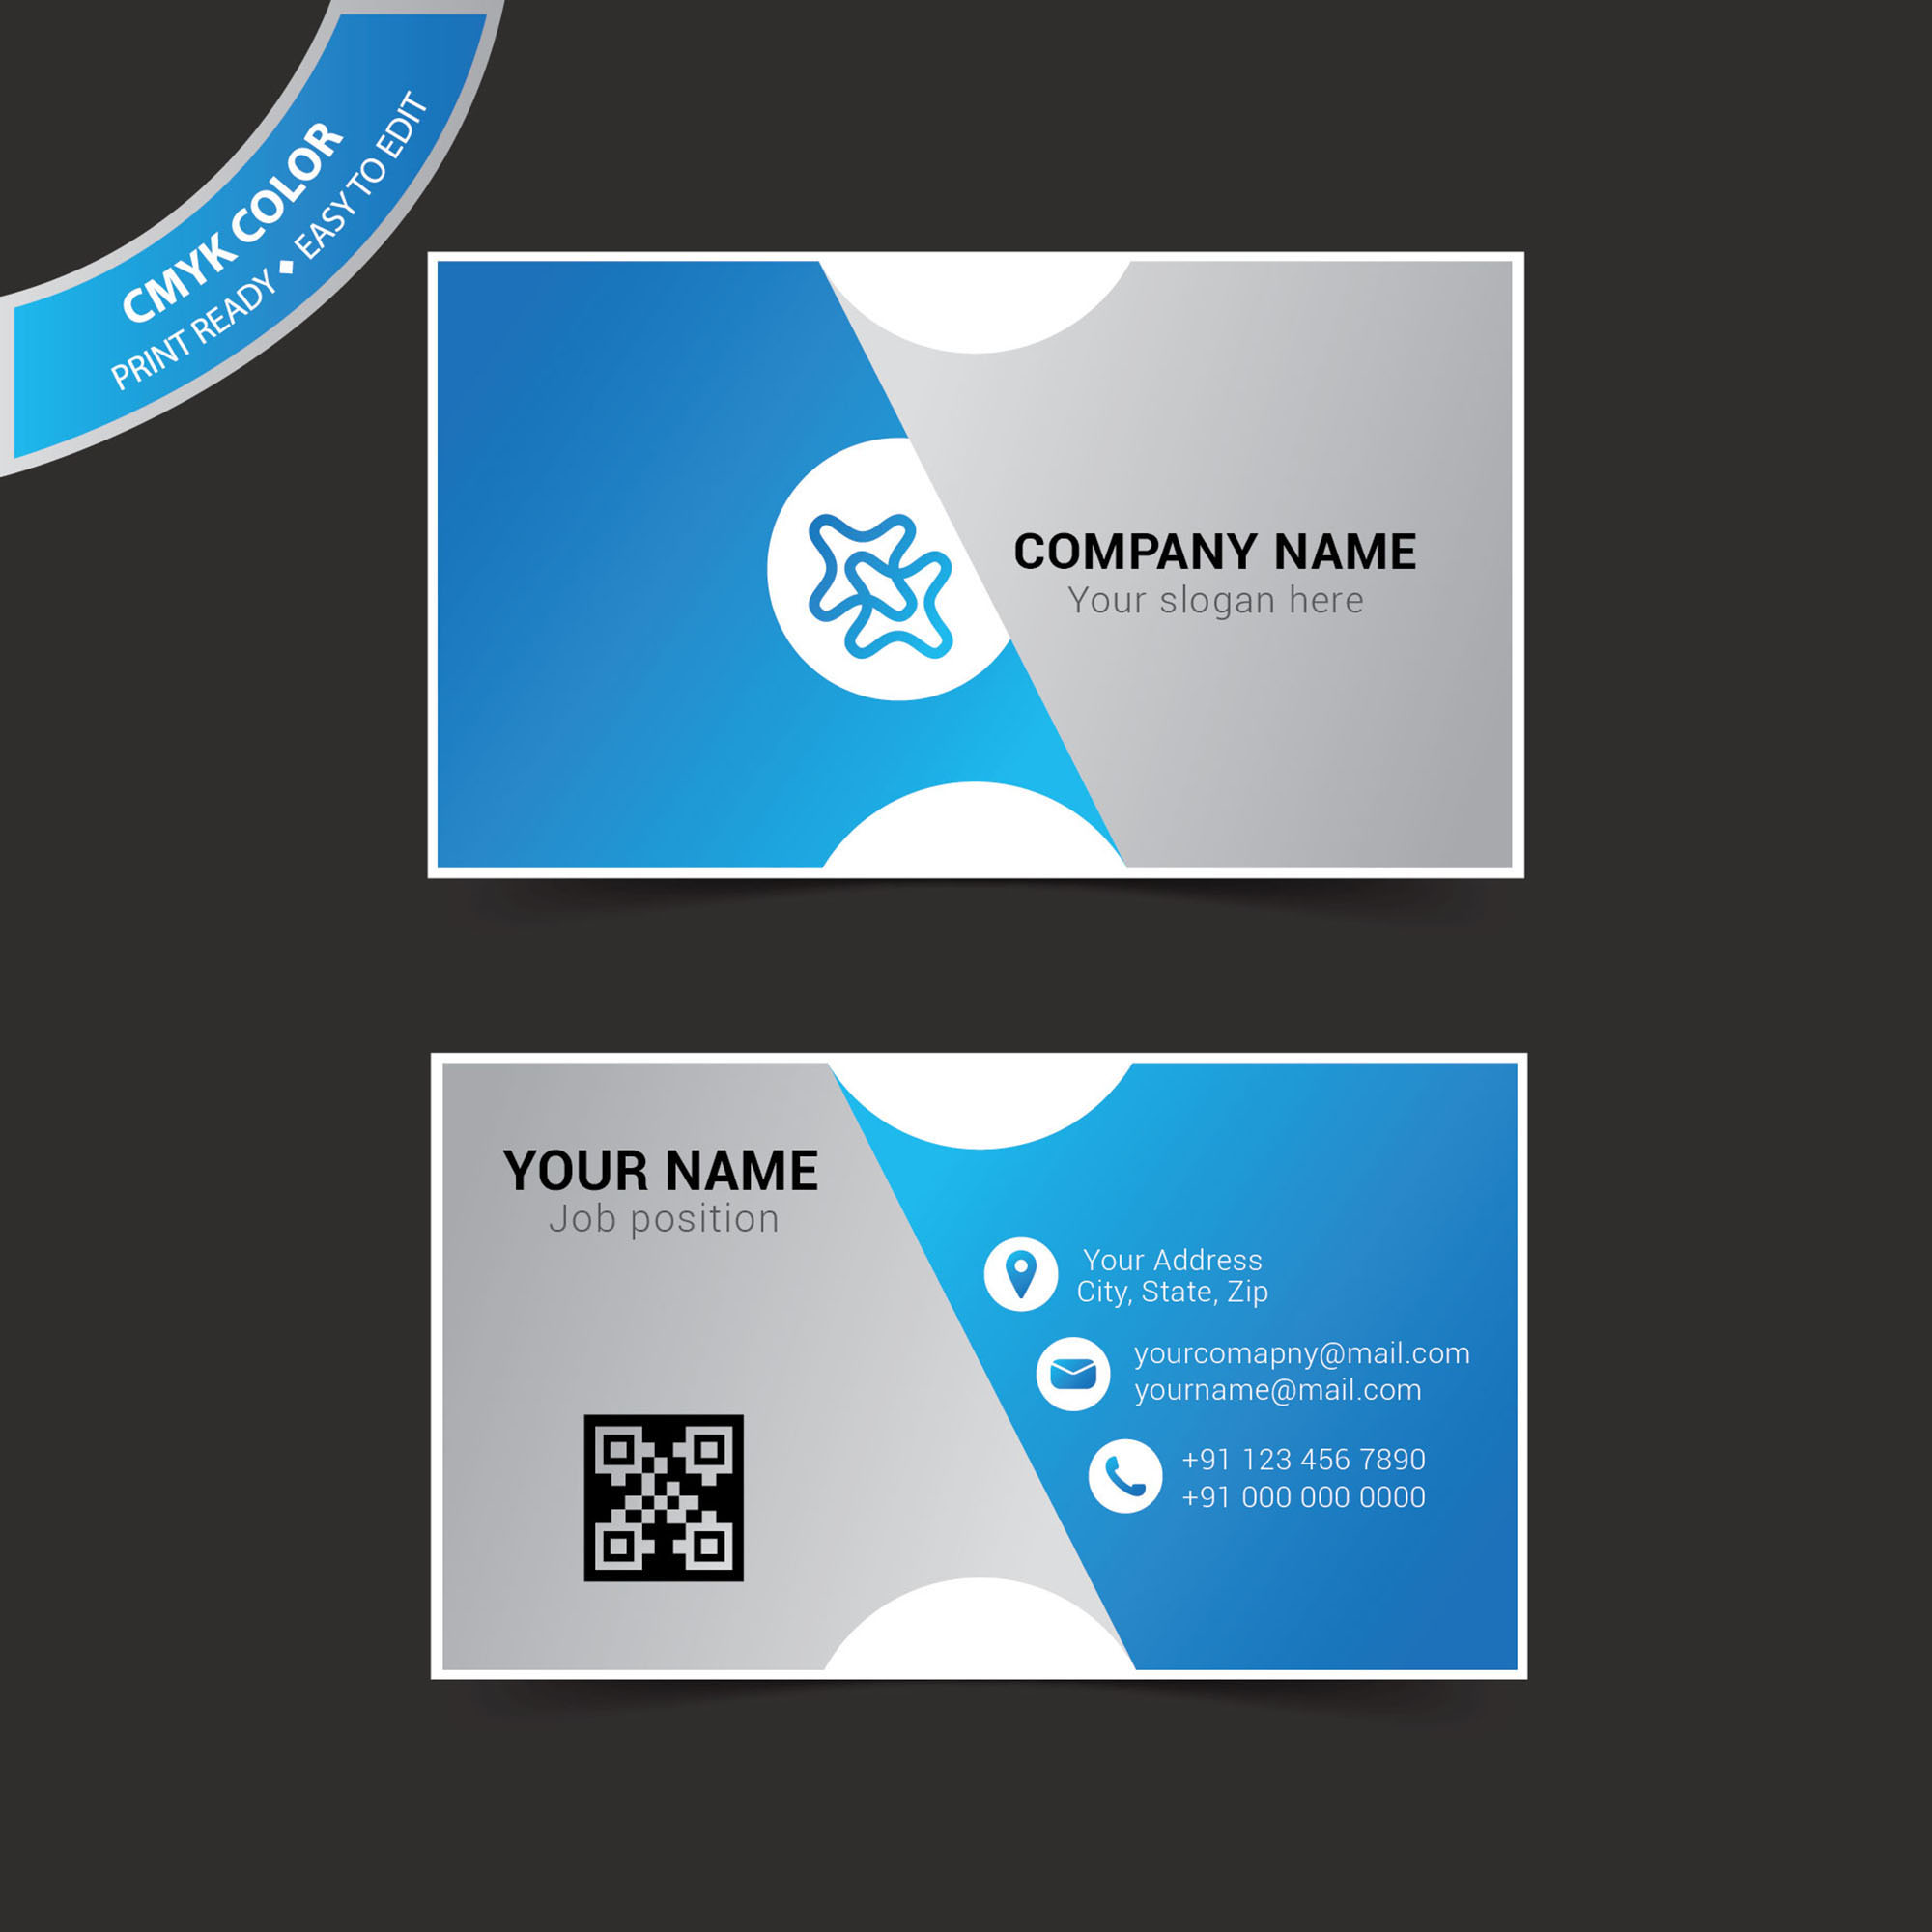 Business card template illustrator free vector wisxi abstract business card design business creative graphic layout template flashek